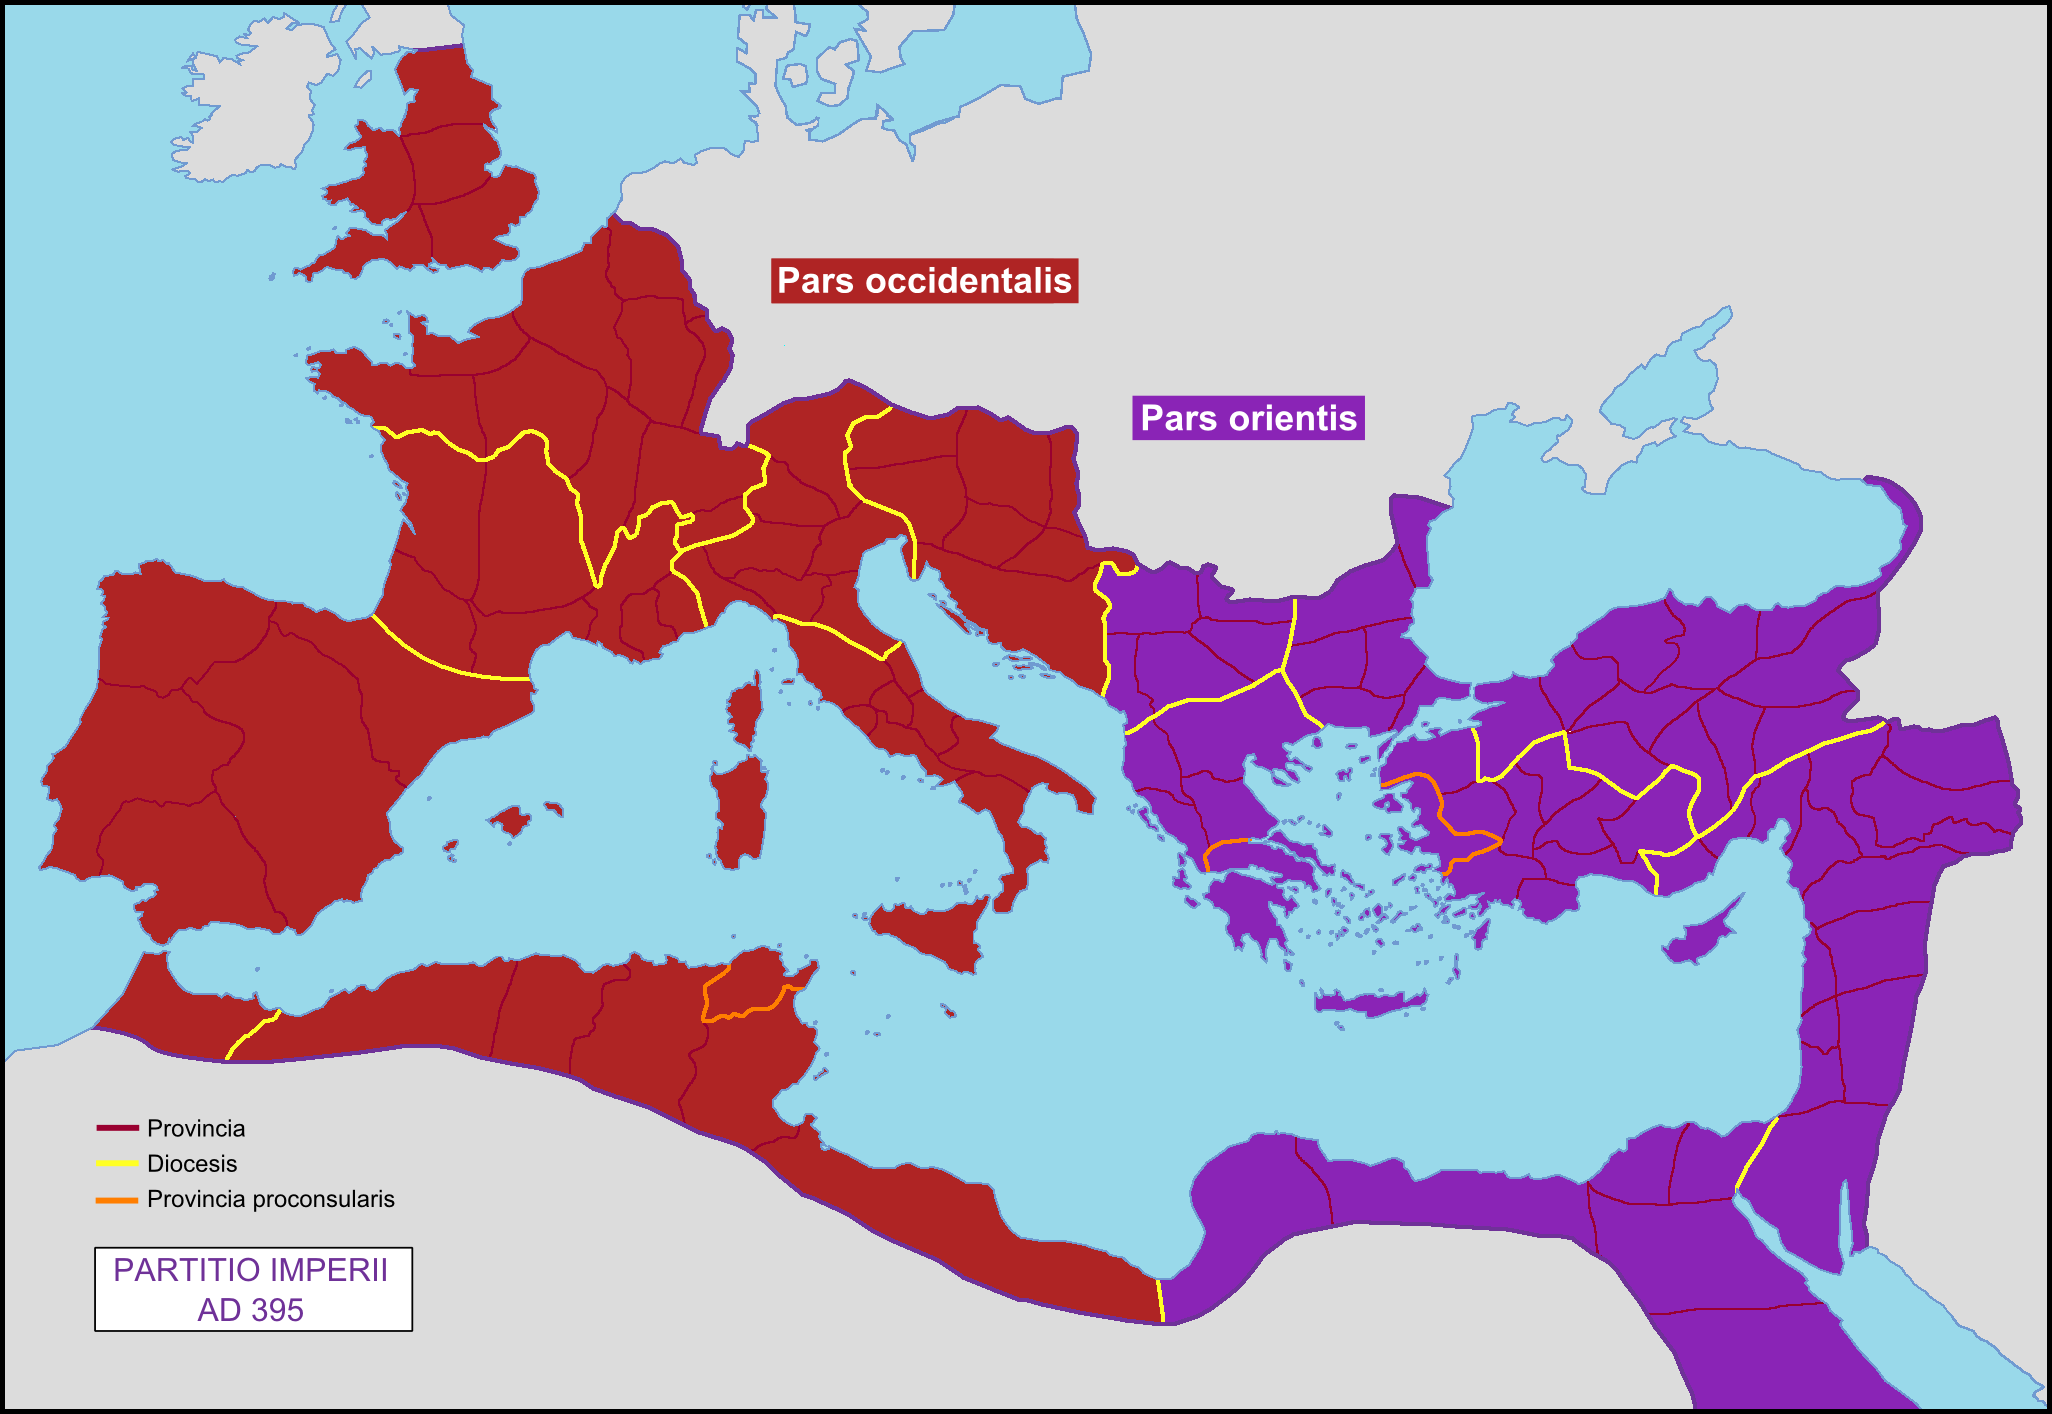 eastern roman empire map Roman Empire Map At Its Height Over Time Istanbul Clues eastern roman empire map